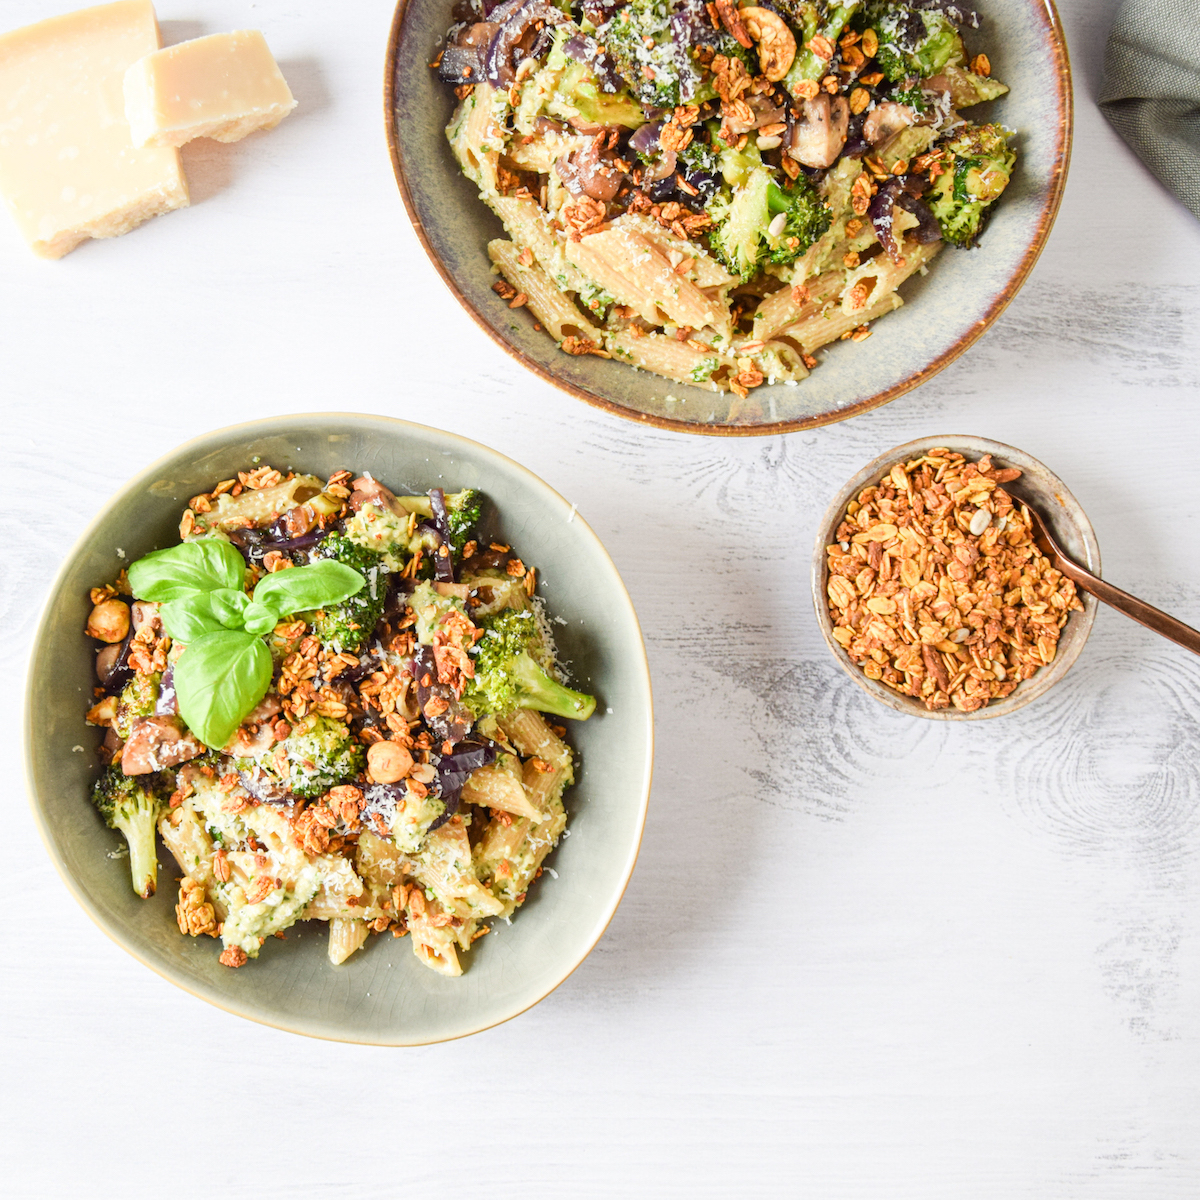 Penne with pesto, broccoli and mushrooms with turmeric quinoa granola